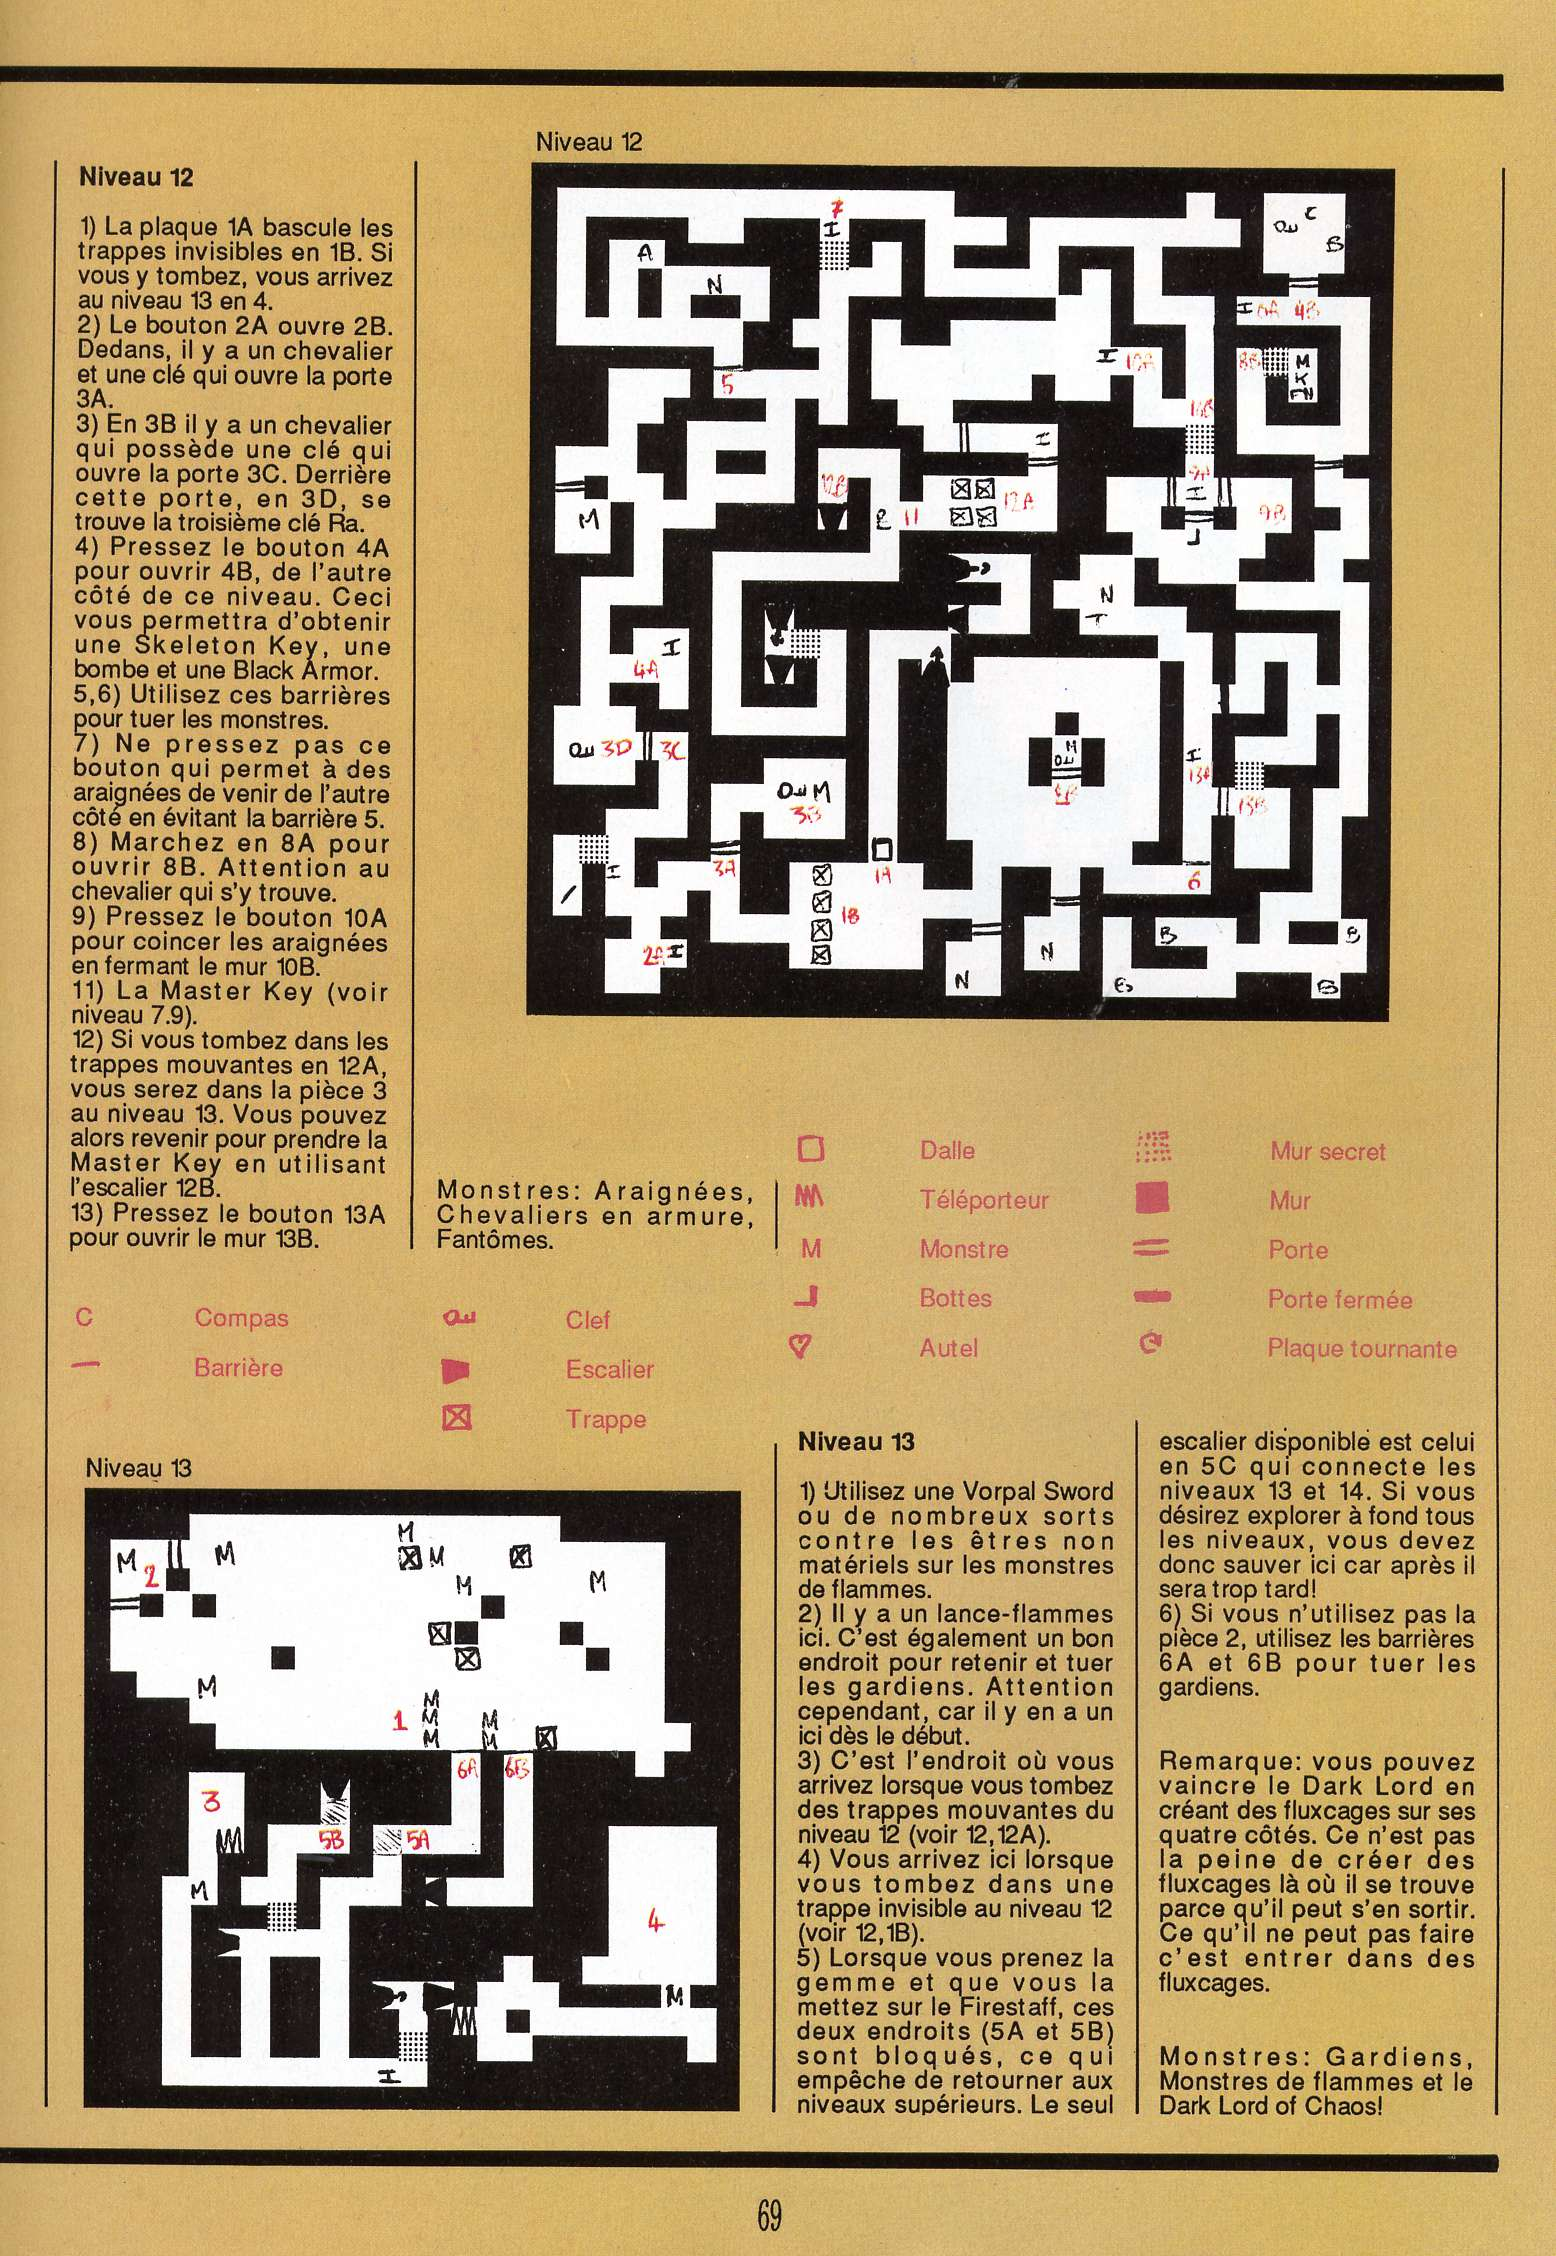 Dungeon Master for Atari ST Guide published in French magazine 'Gen4', Issue #9, March 1989, Page 69